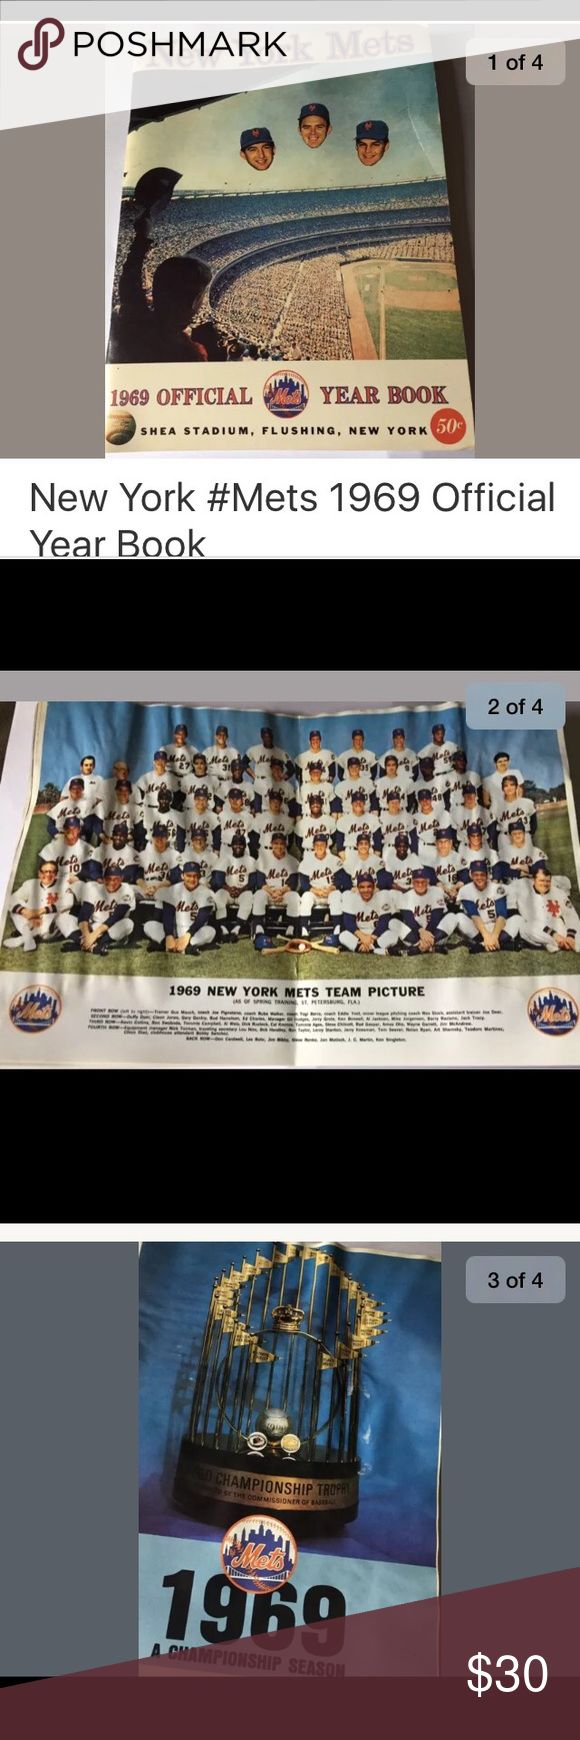 ⚾️1969 NY Mets Yearbook⚾️ A must have for the NY Met's fan. See pictures and stats from the first year the Mets win the World Series. There is some water damage, but the pages are in good condition. Pet free smoke free home. Other